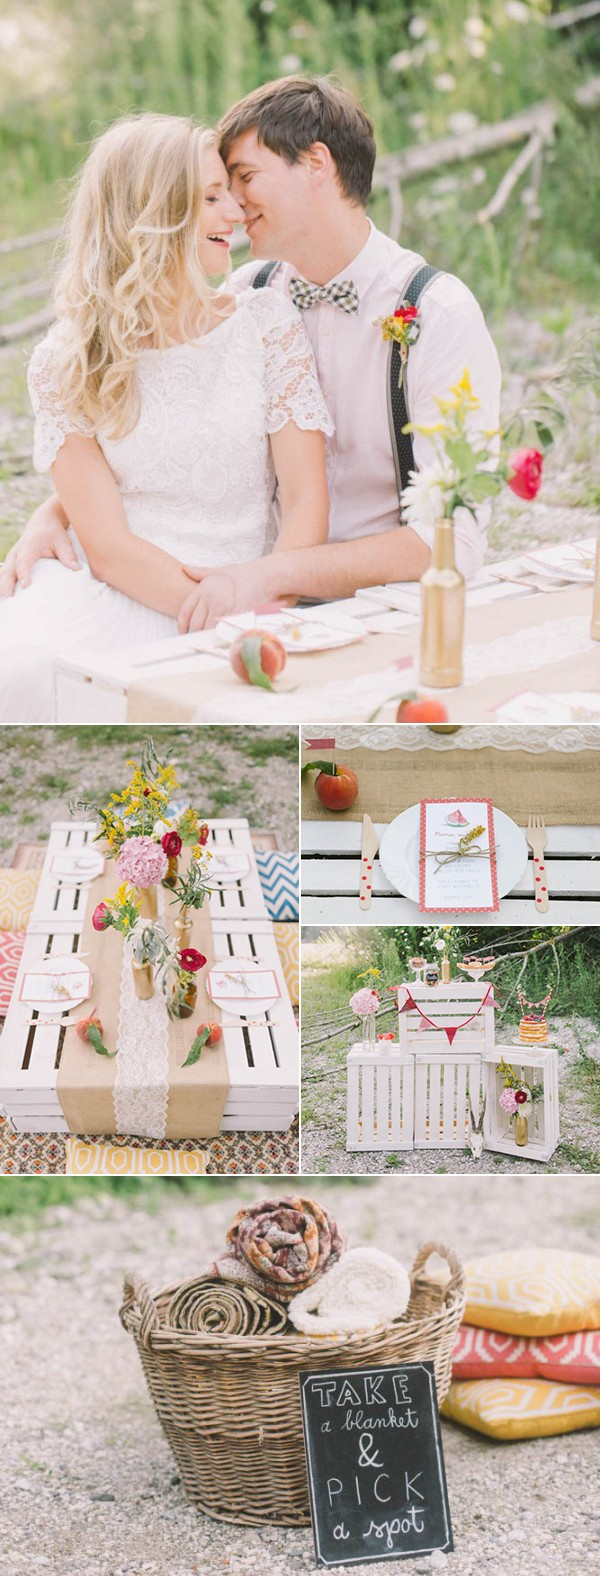 5 of Our Favorite Picnic Weddings to Inspire Your Summer Soirée | Junebug Weddings